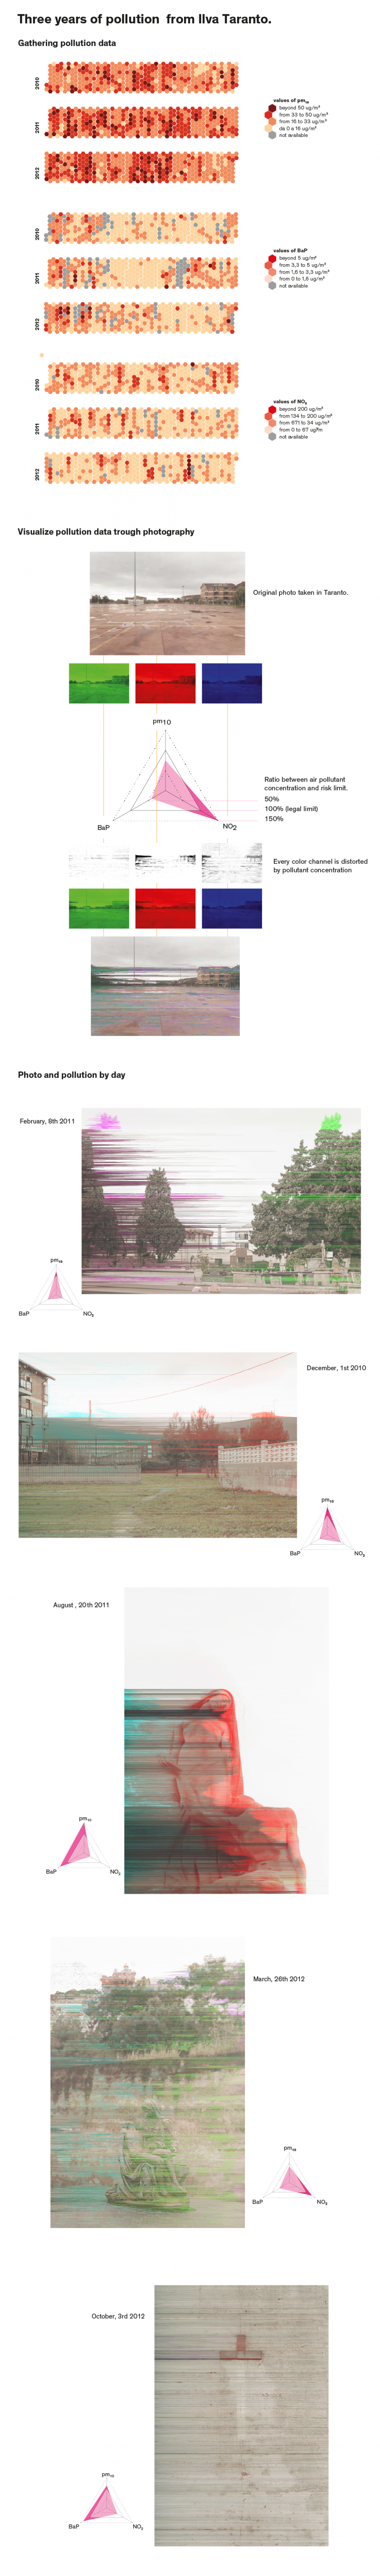 Visualize air pollution trough photography Infographic